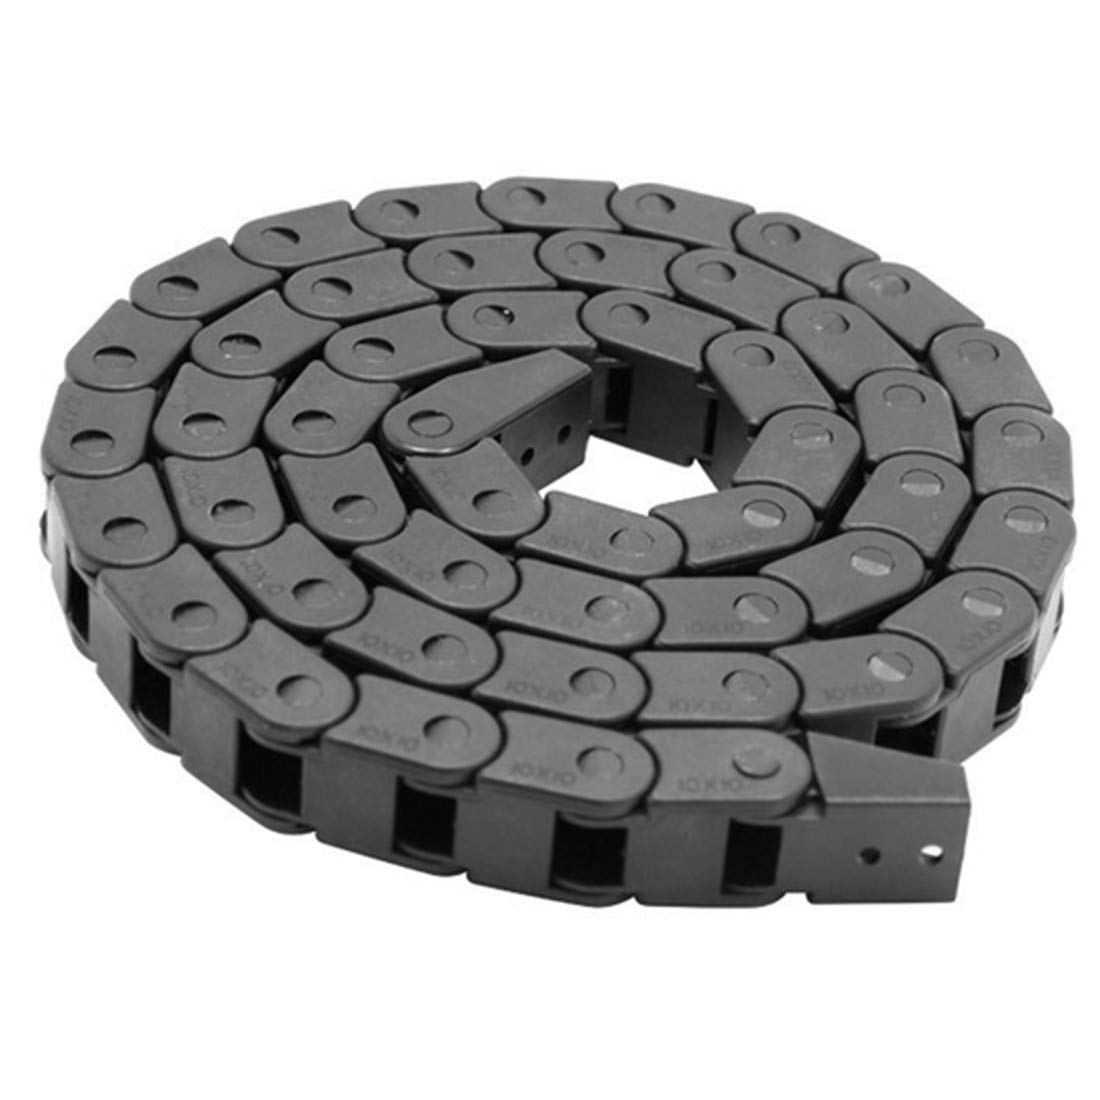 Fevas 1Pc 7 x 15mm 715mm L1000mm Cable Drag Chain Wire Carrier with End Connectors for CNC Router Machine Tools